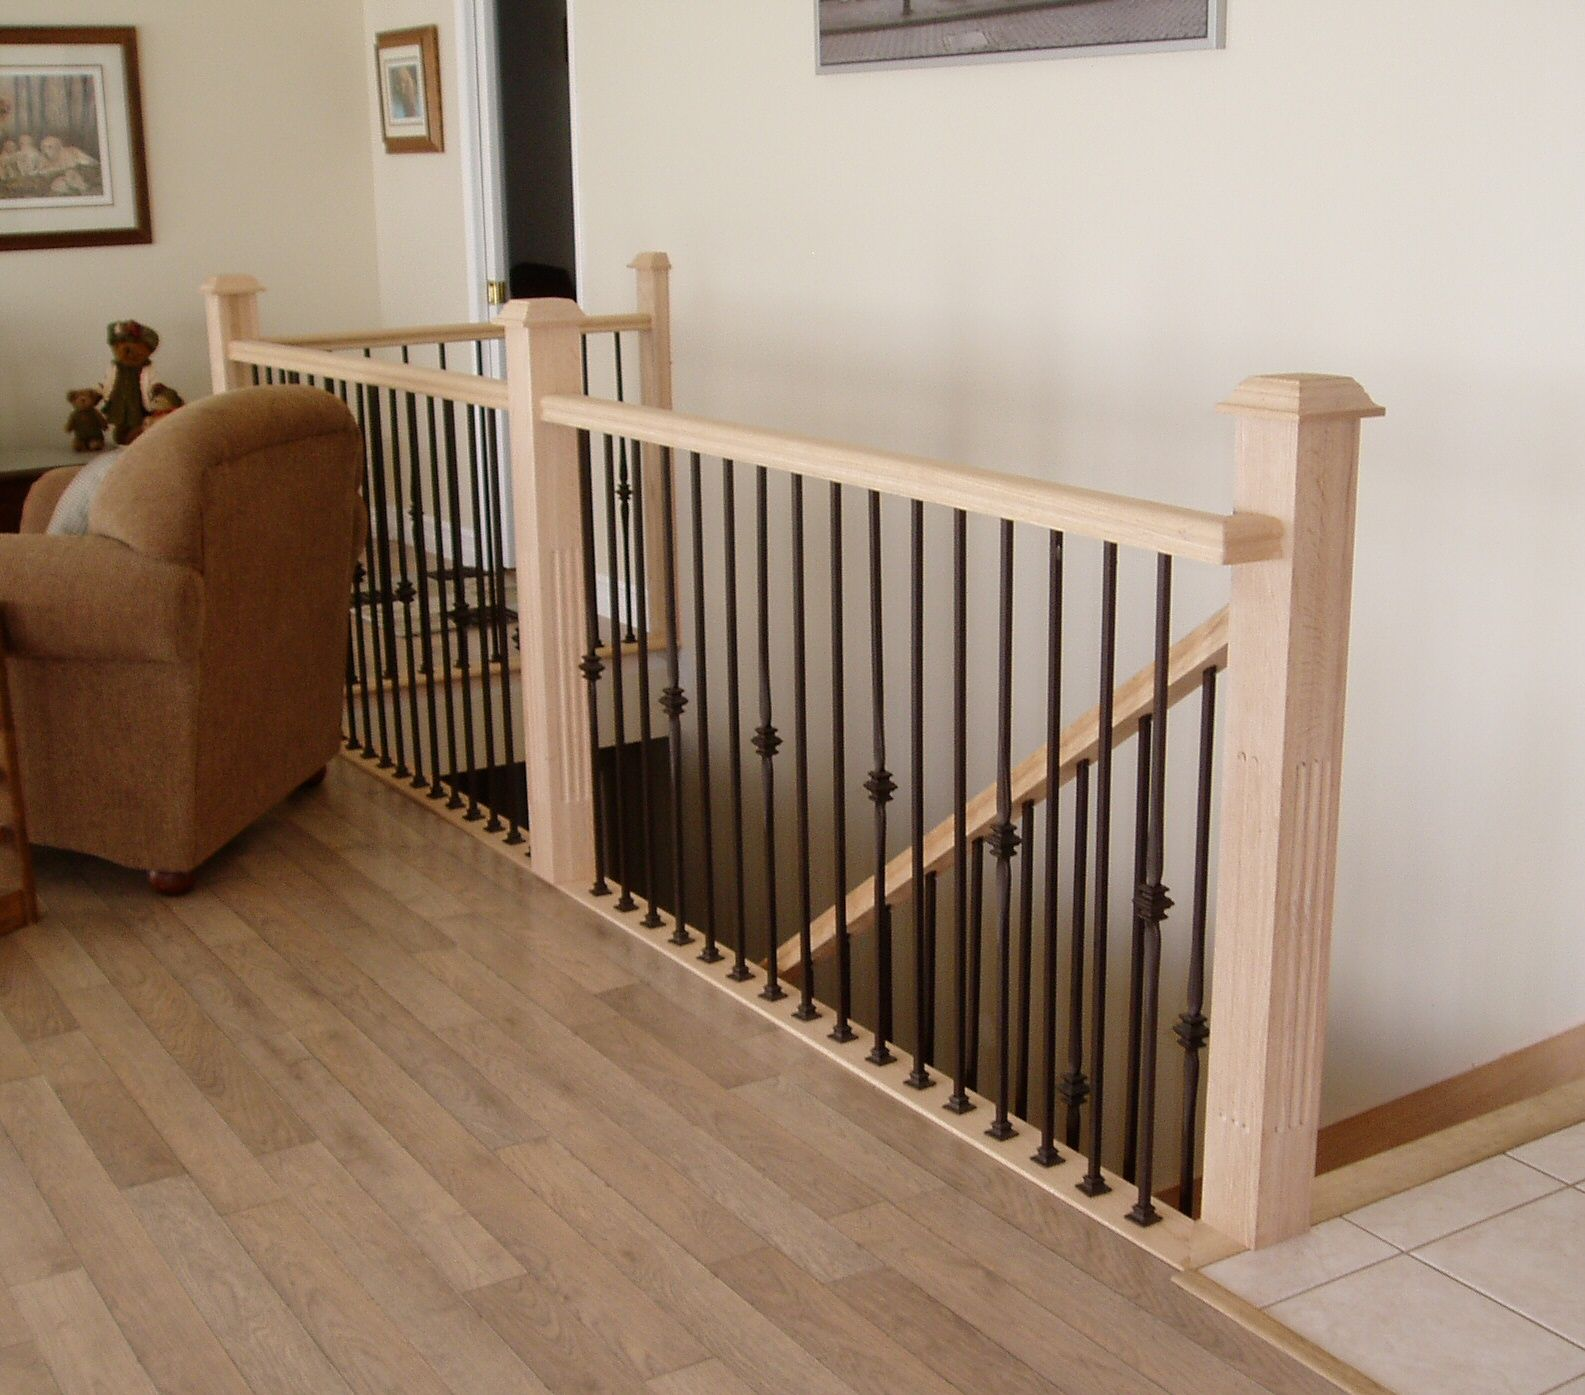 Stair Designs Railings Jam Stairs Amp Railing Designs 1585x1395px Home And Interior Ideas